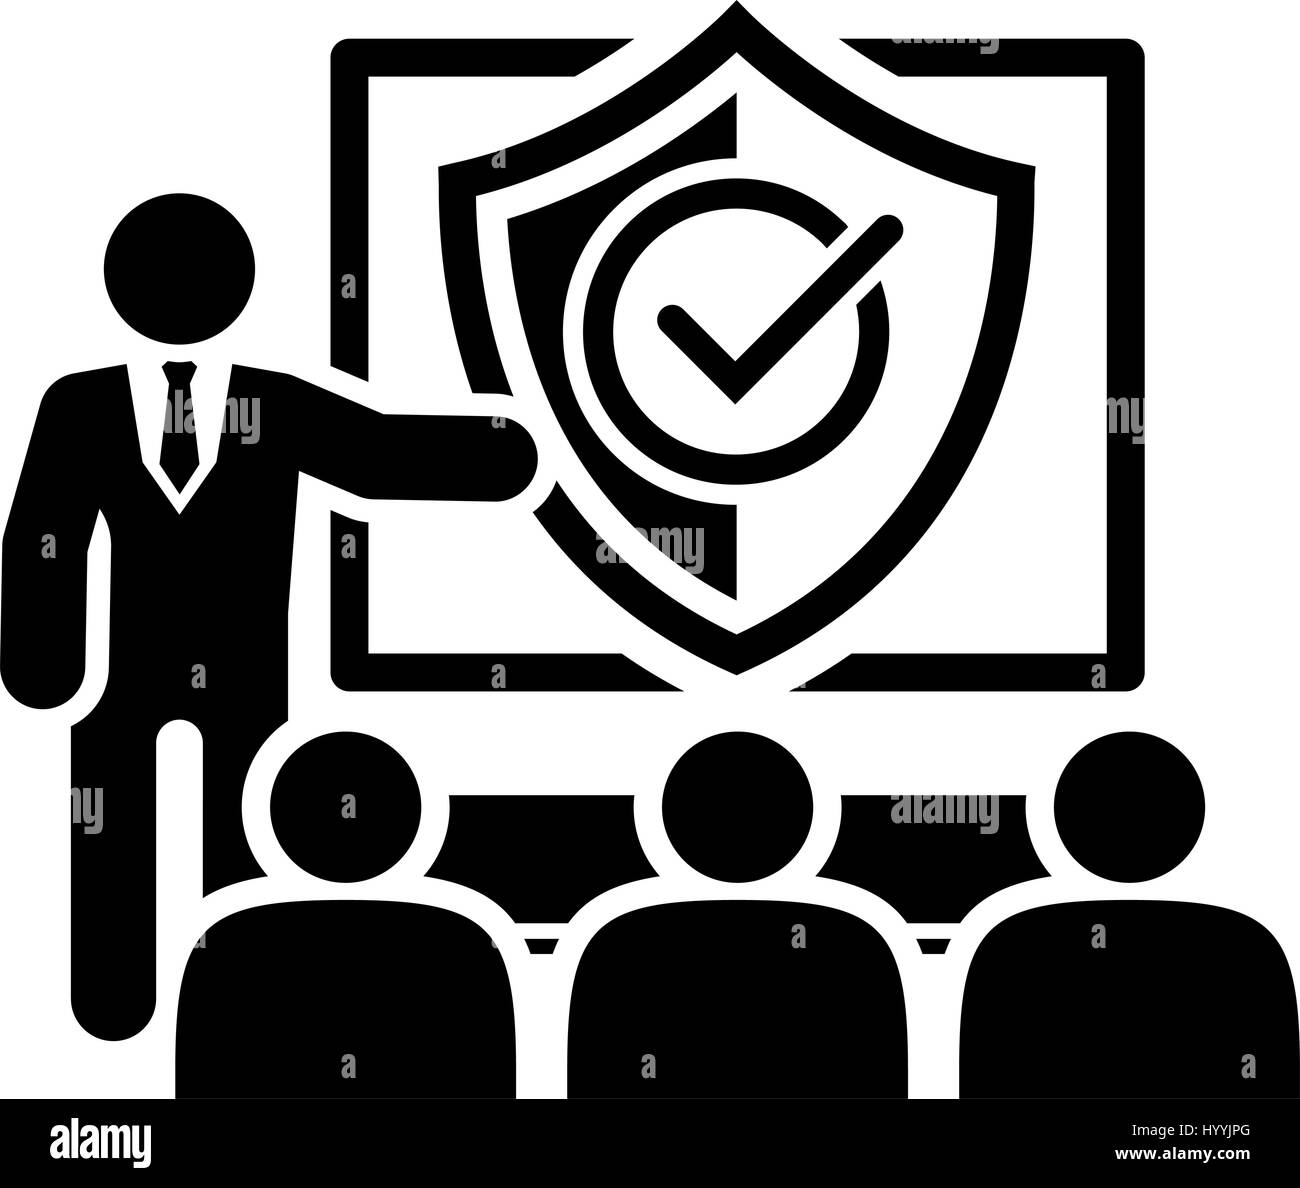 Security Briefing Icon Business Concept Stock Vector Art